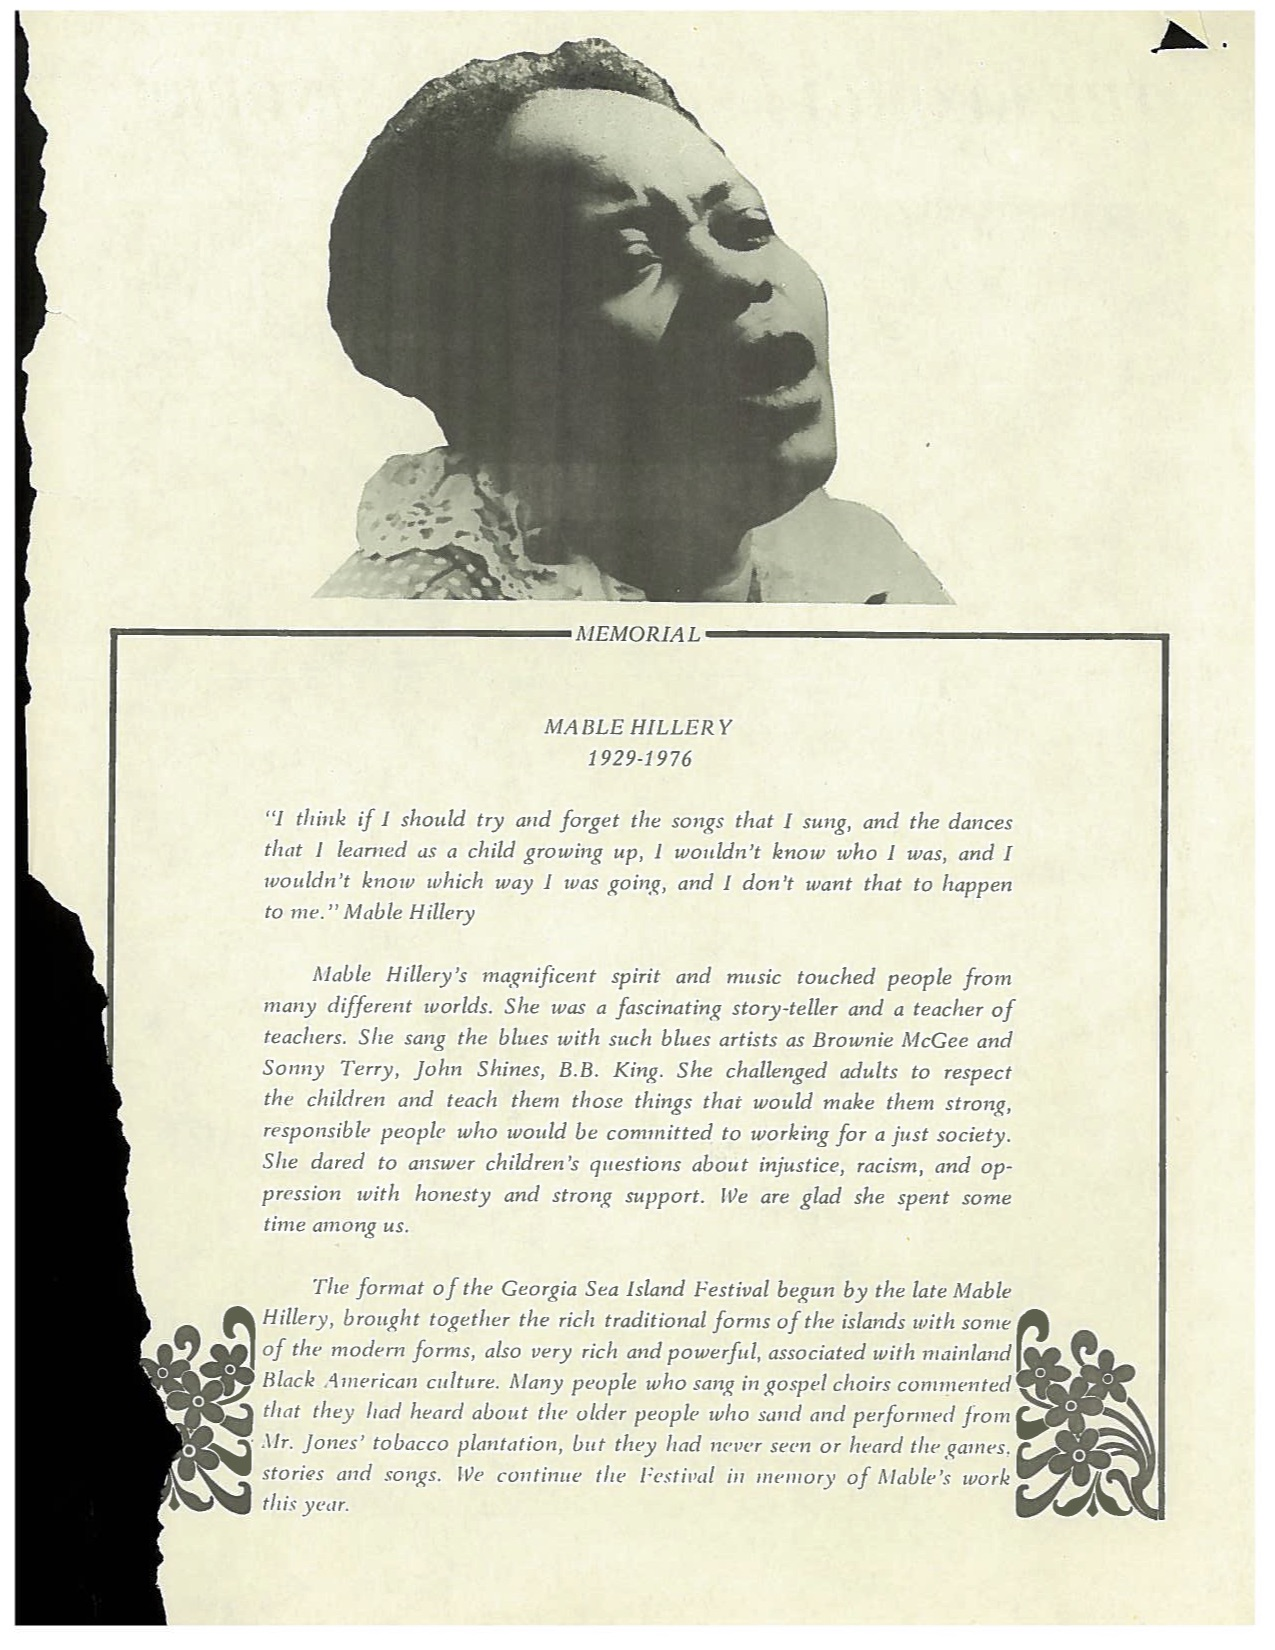 Mable Hillery memorial card, from Folder 61, in the Southern Folk Cultural Revival Project Collection 20004, Southern Folklife Collection, The Wilson Library, University of North Carolina at Chapel Hill